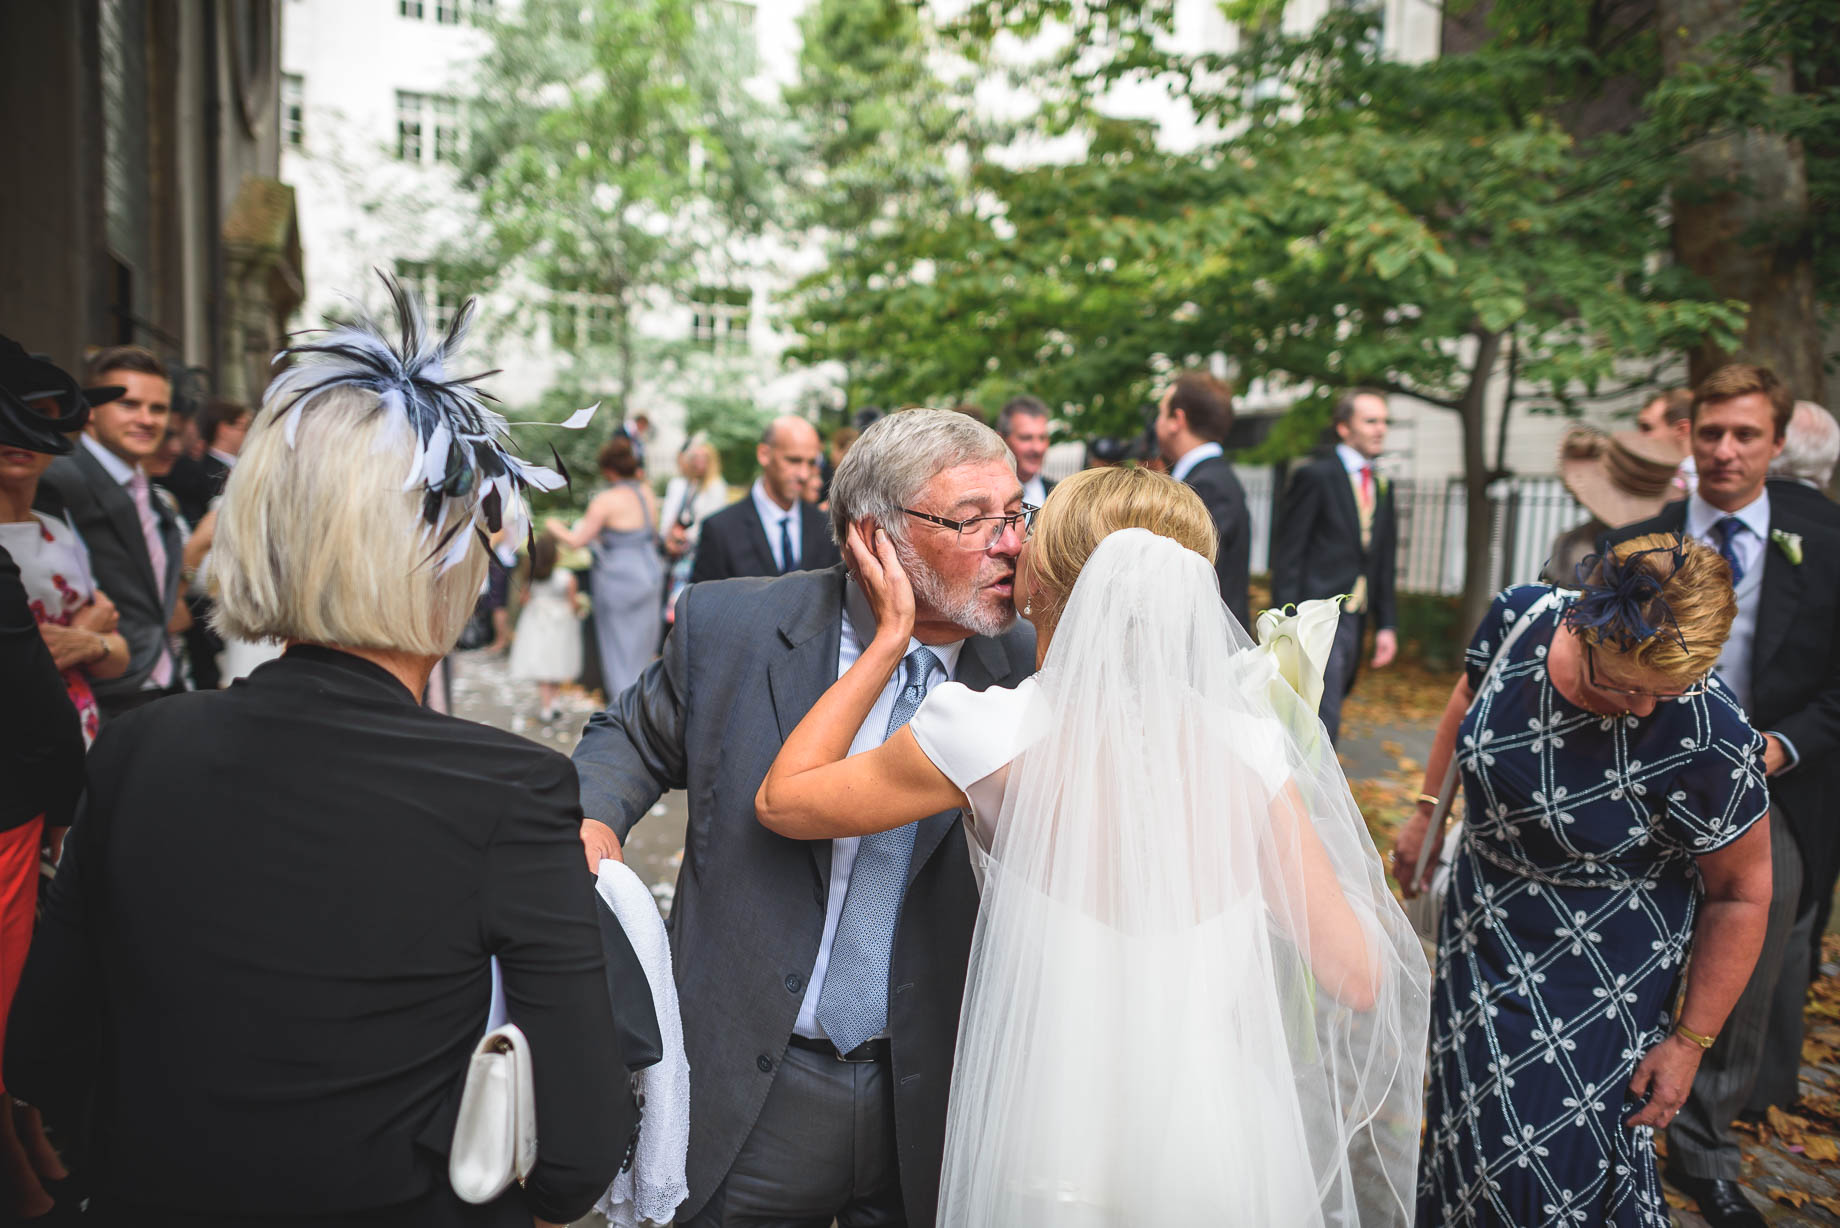 Shoreditch wedding photography - Guy Collier - Kat and Henry (88 of 200)